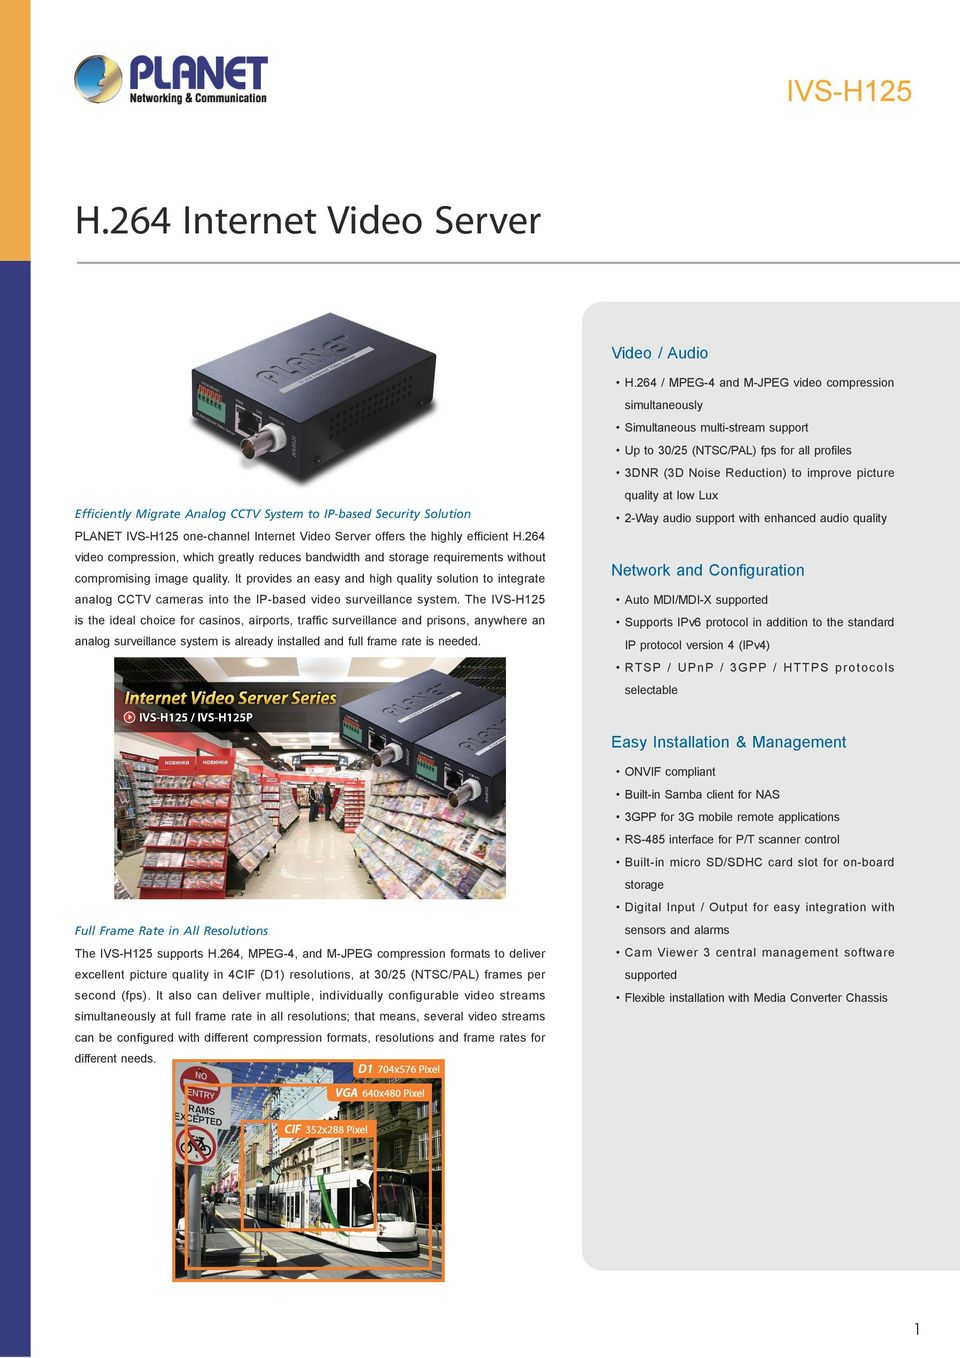 Efficiently Migrate Analog CCTV System to IP-based Security Solution 2-Way audio support with enhanced audio quality PLANET one-channel Video Server offers the highly efficient H.